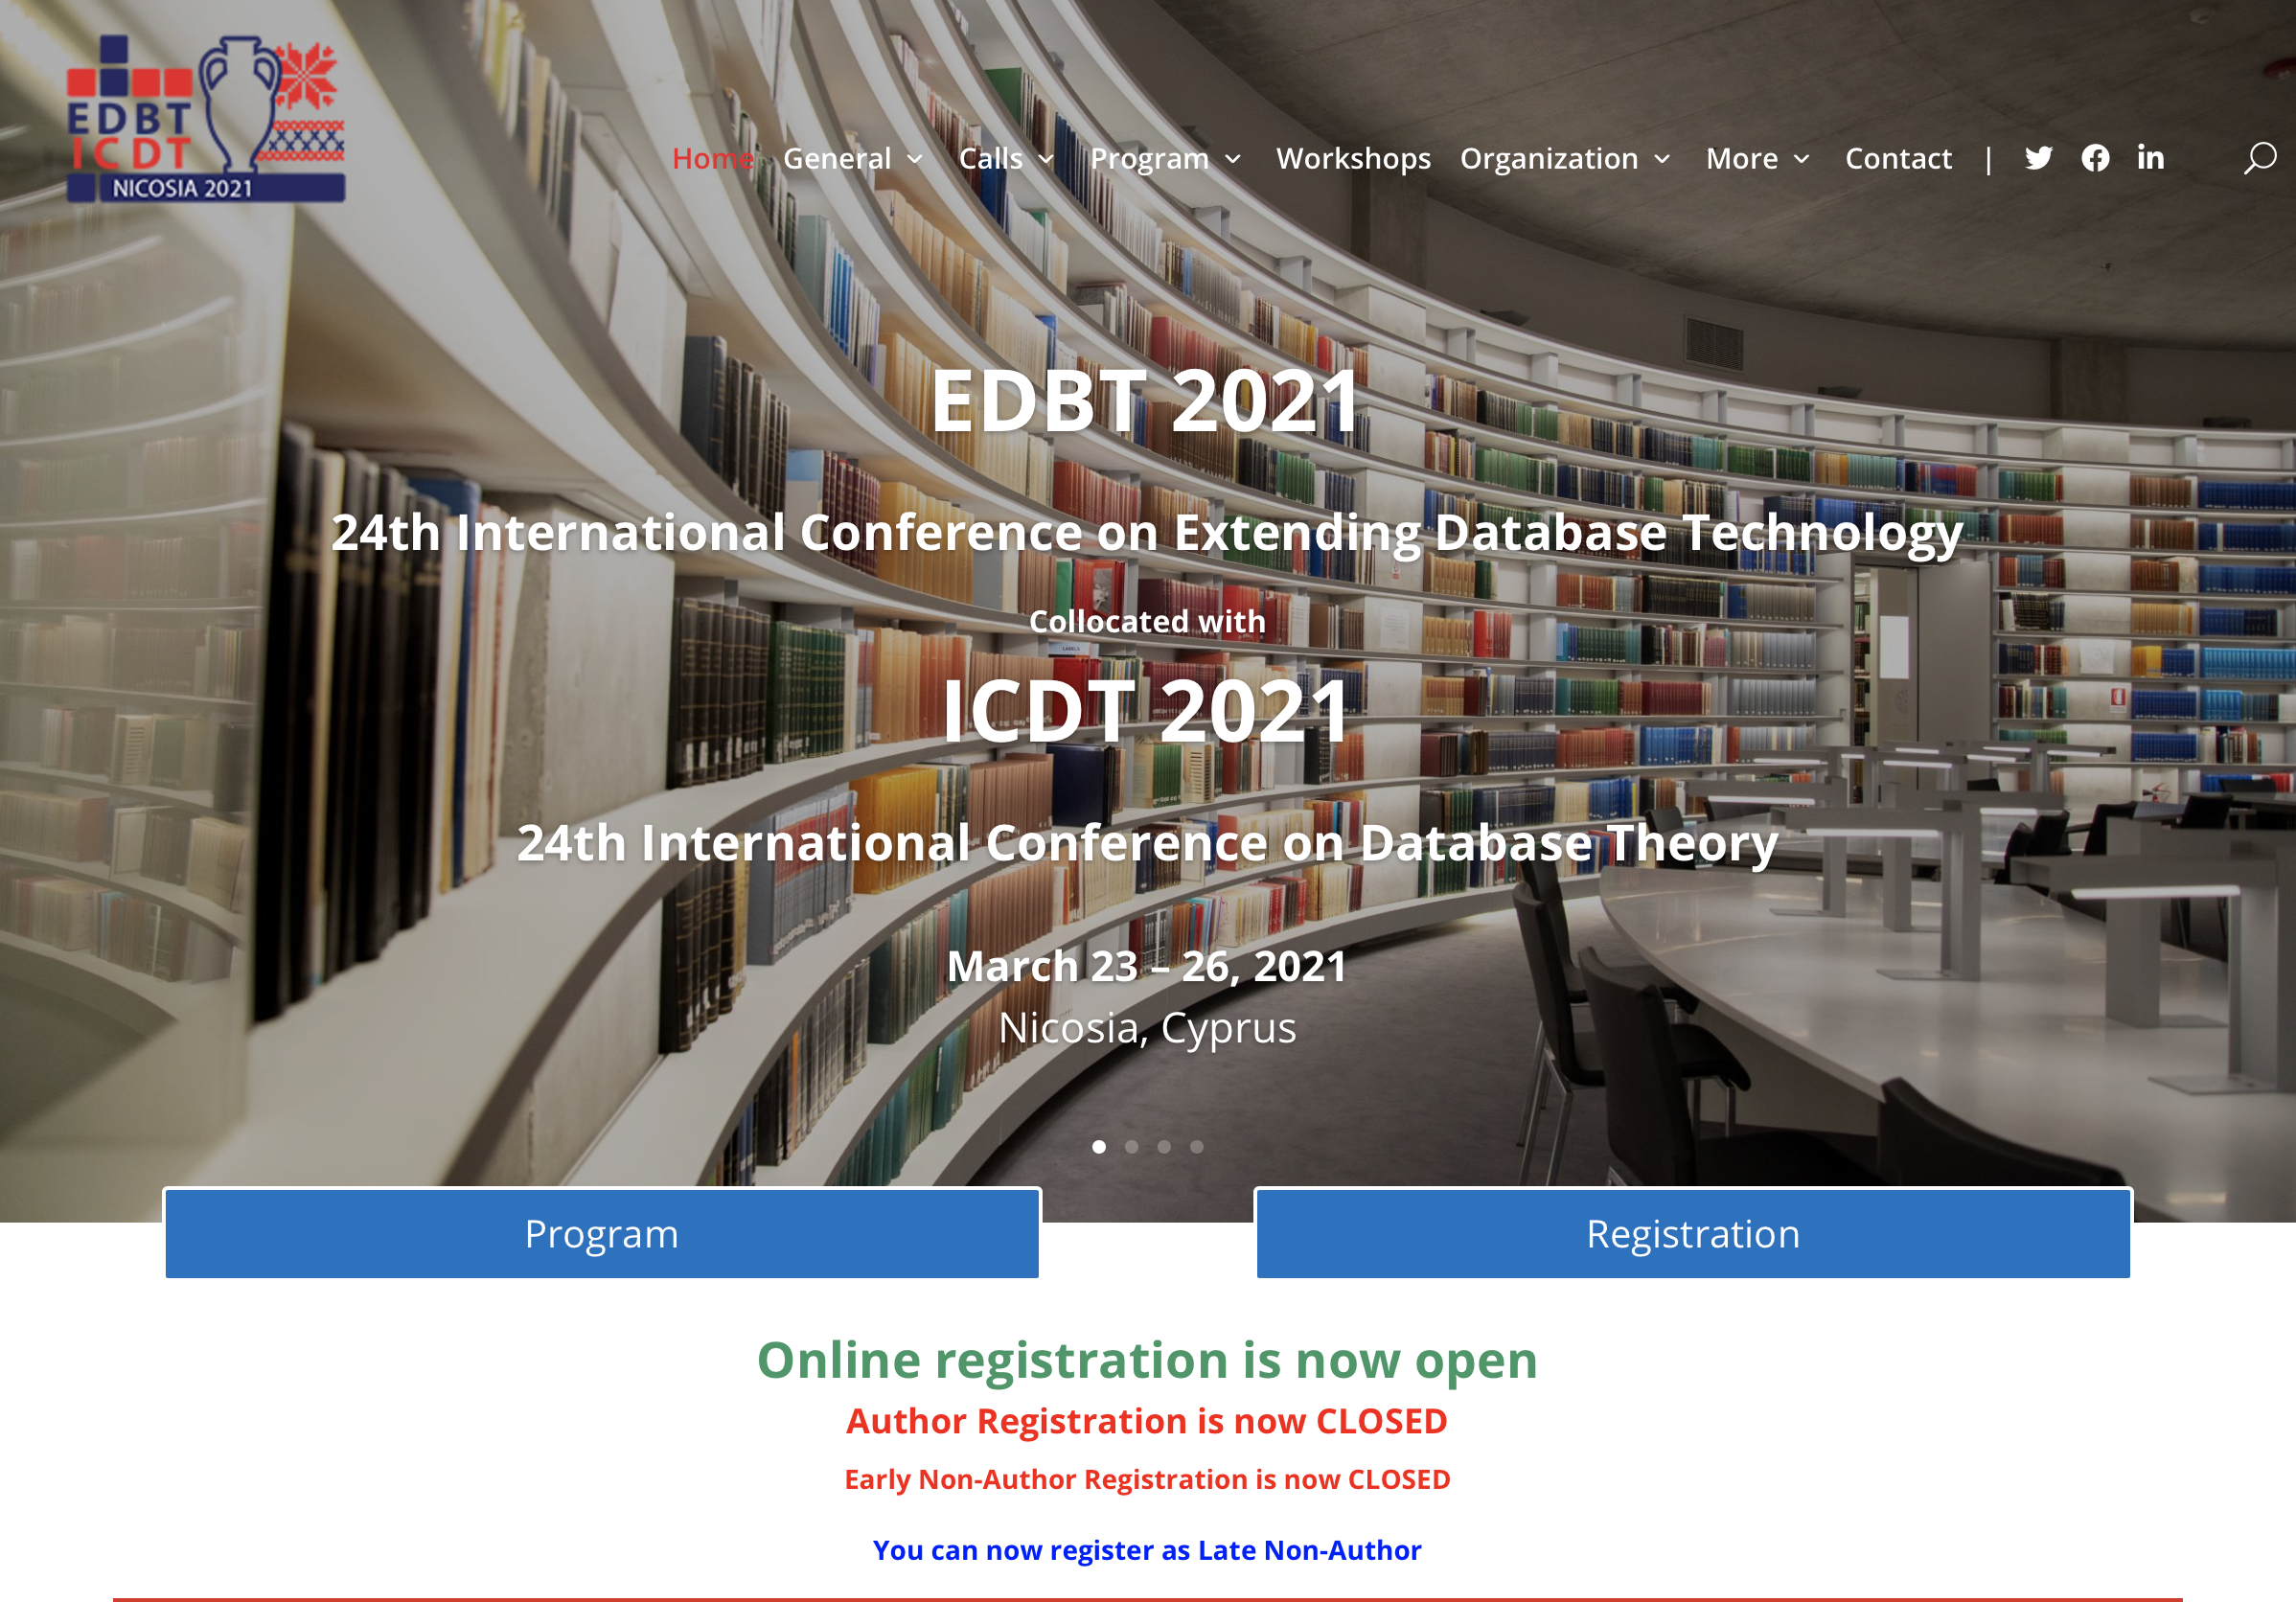 EDBT'21 Conference – the Data Science Lab is there!